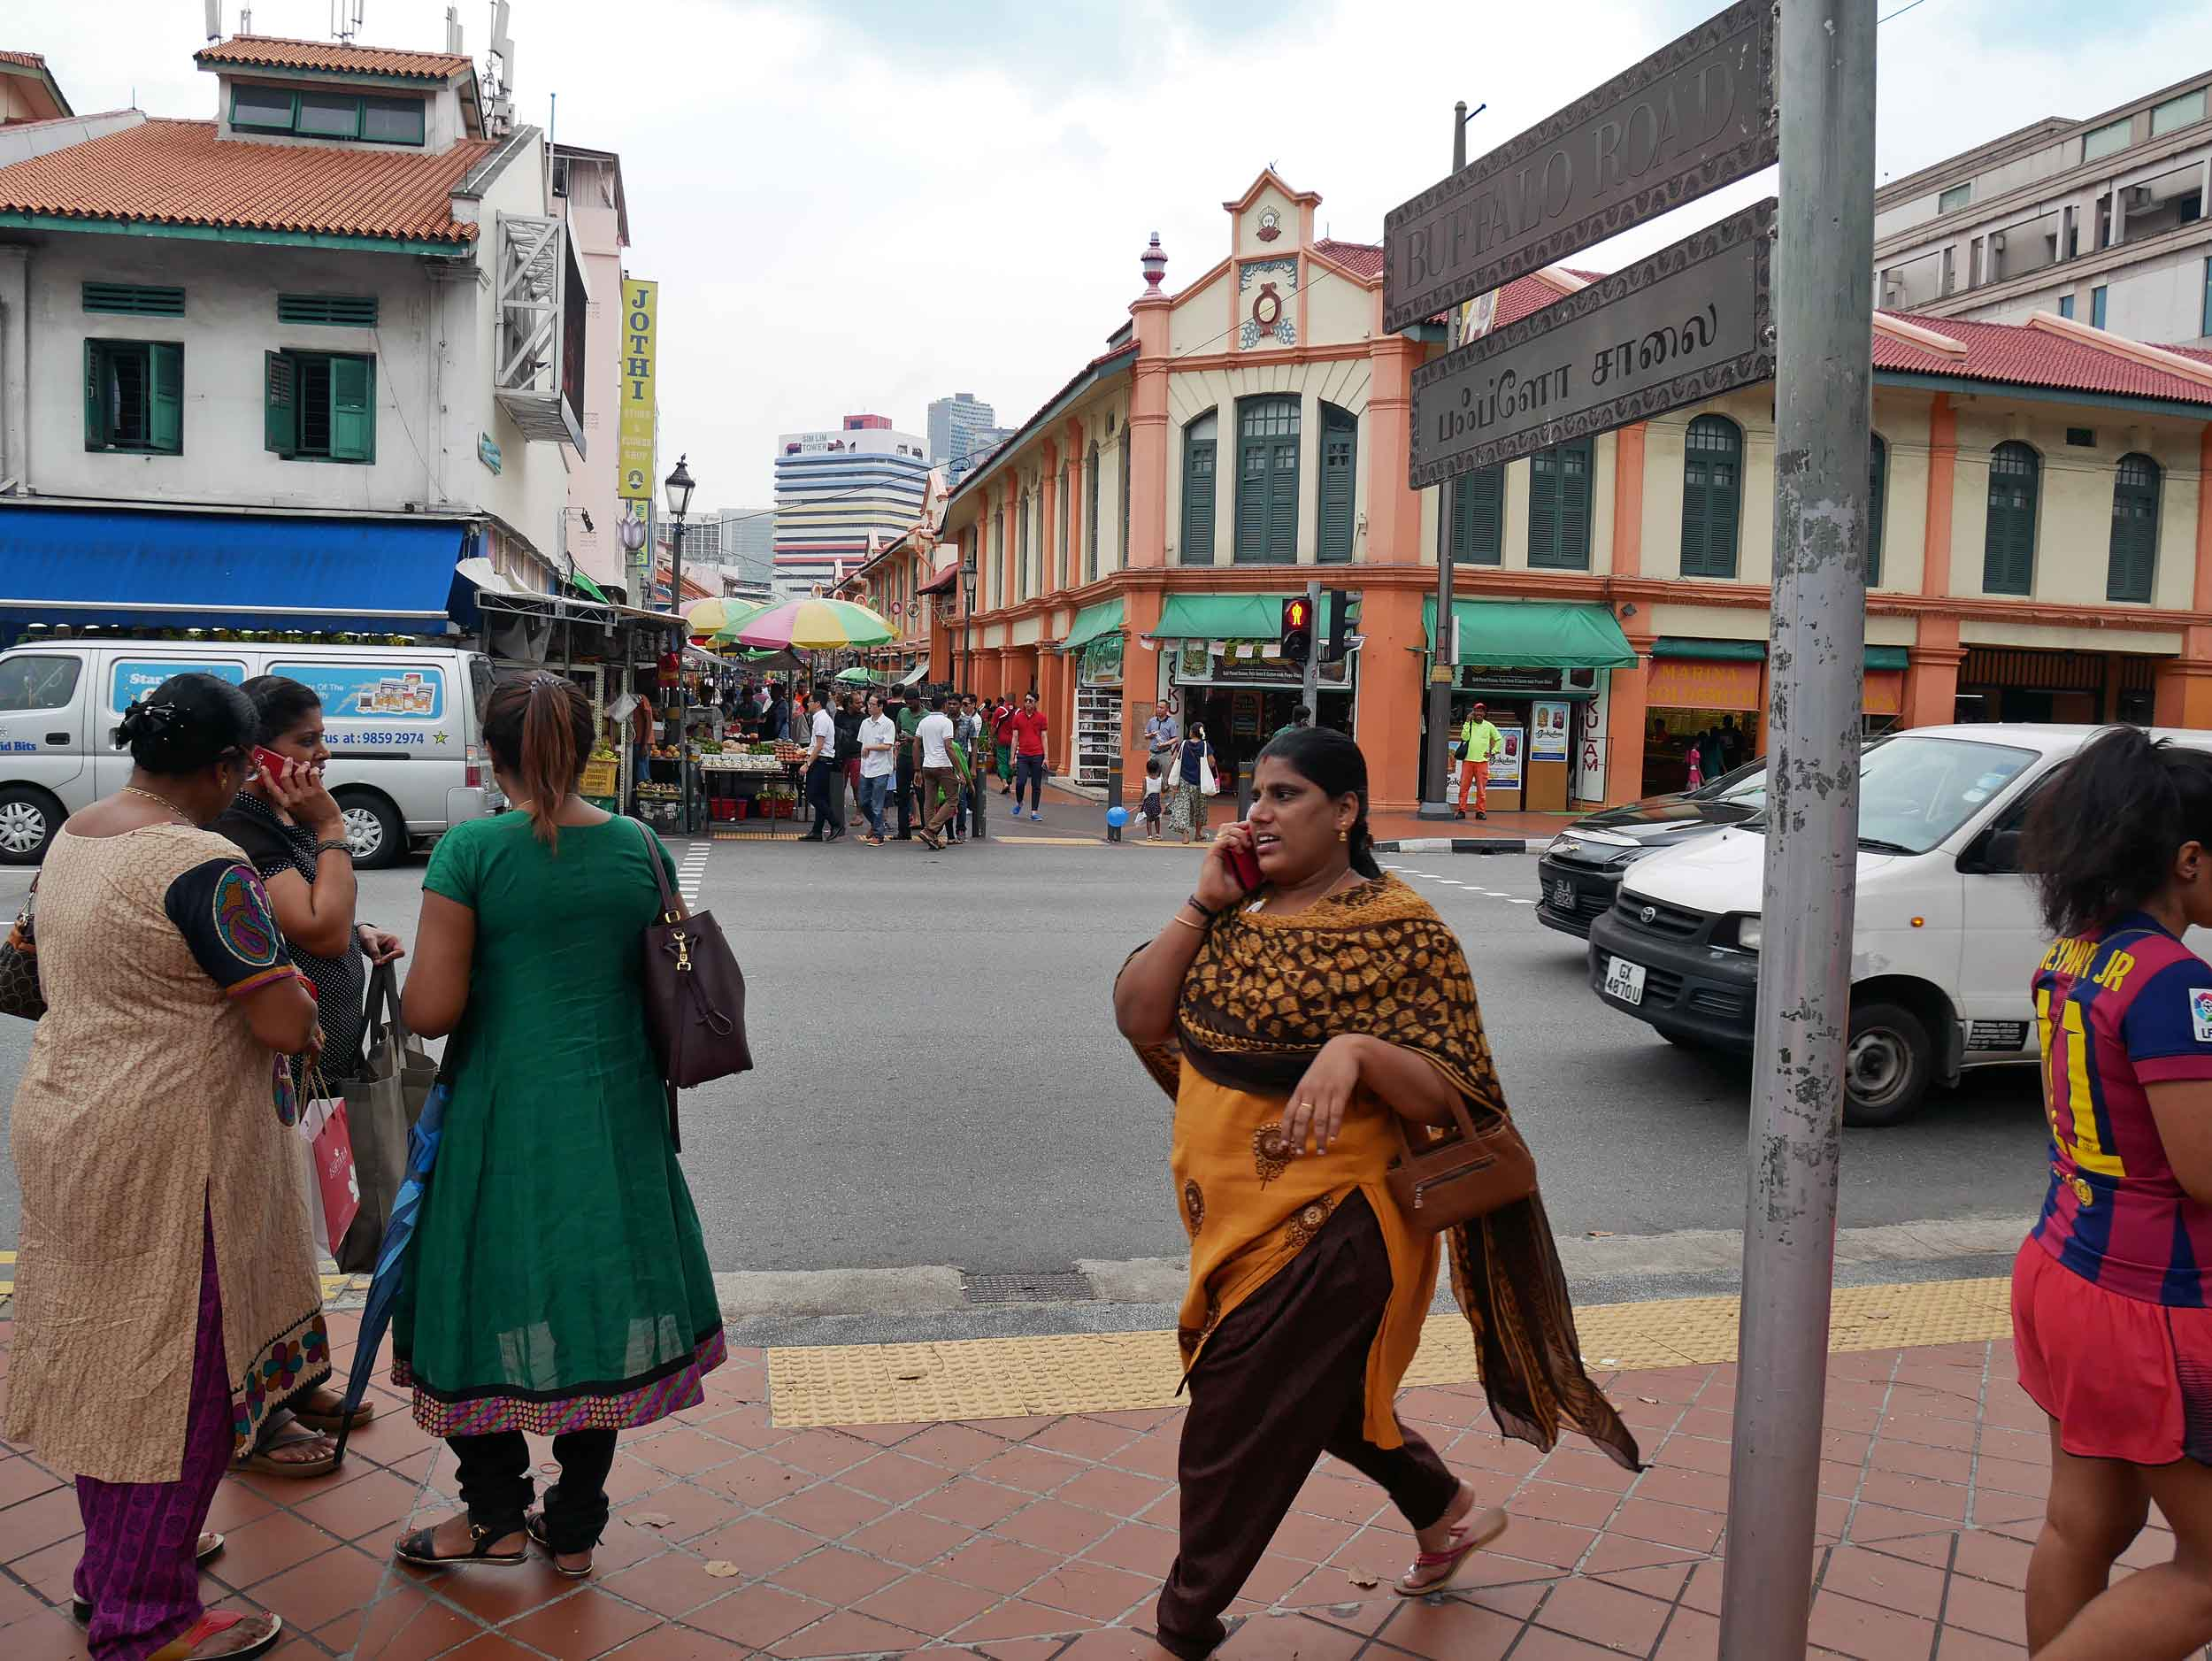 We were charmed by the vibrant colors and busy streets of Singapore's Little India.